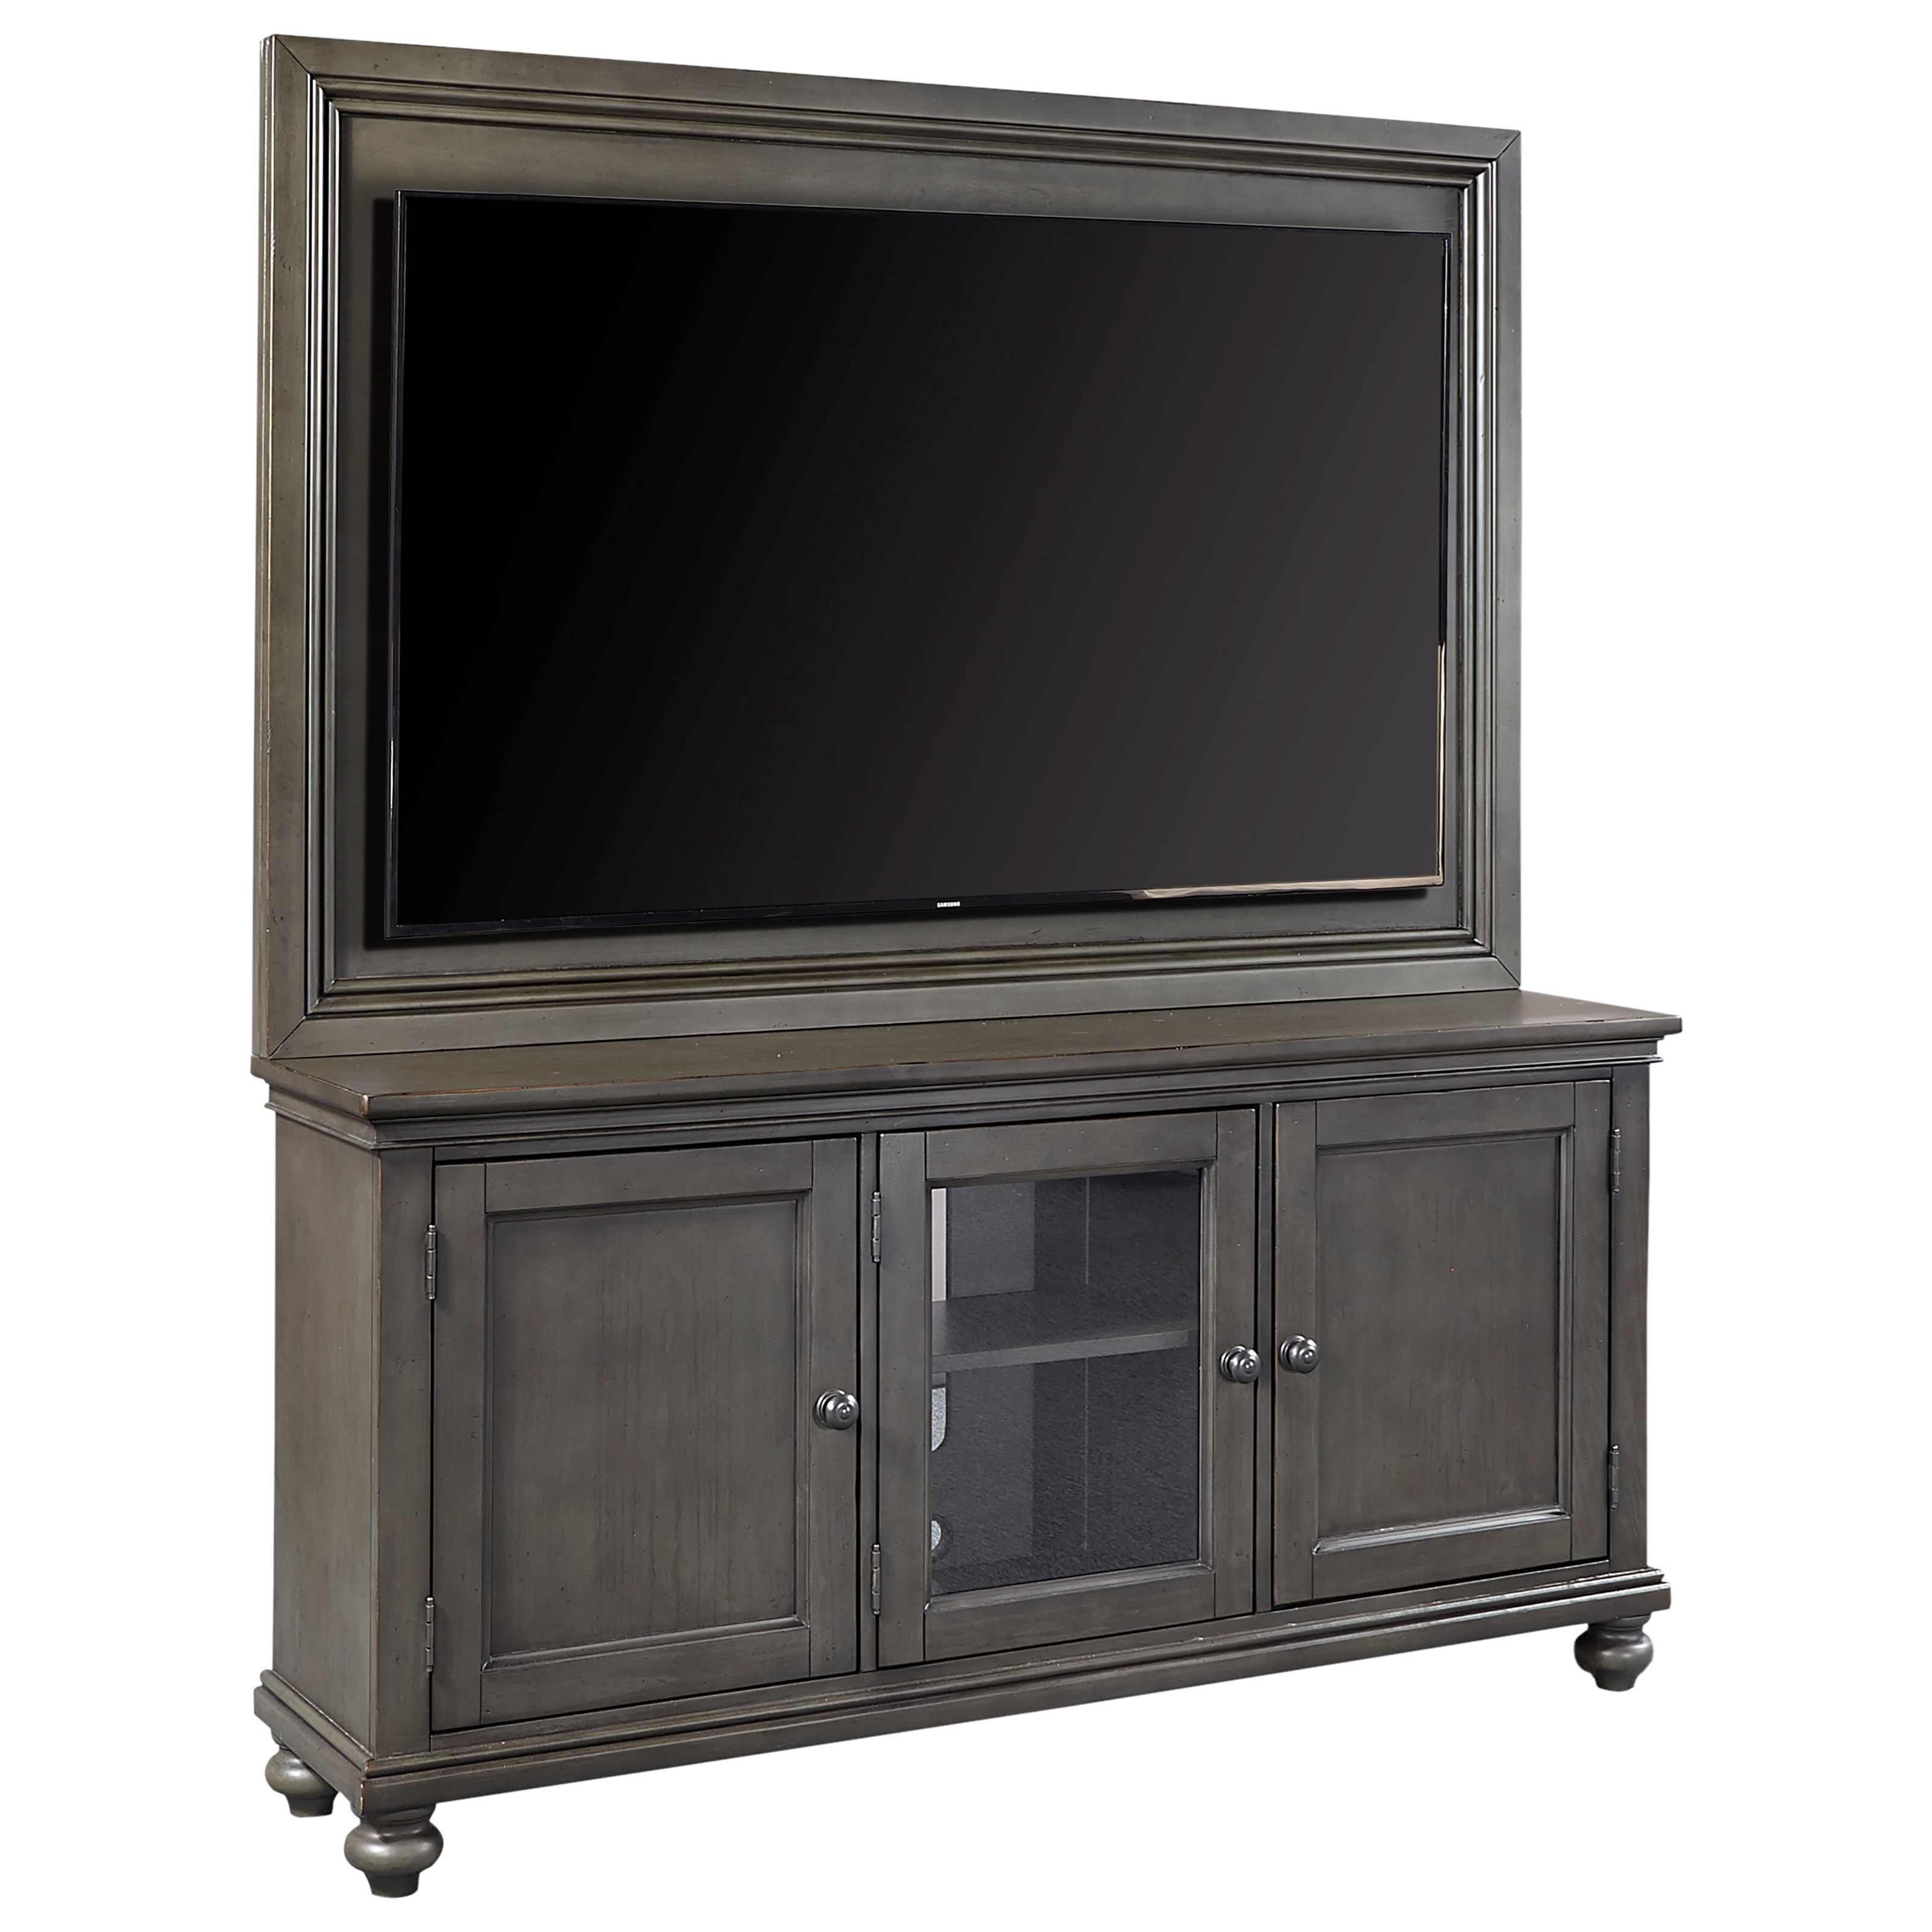 """Oxford 65"""" TV Stand With Backer by Aspenhome at Mueller Furniture"""